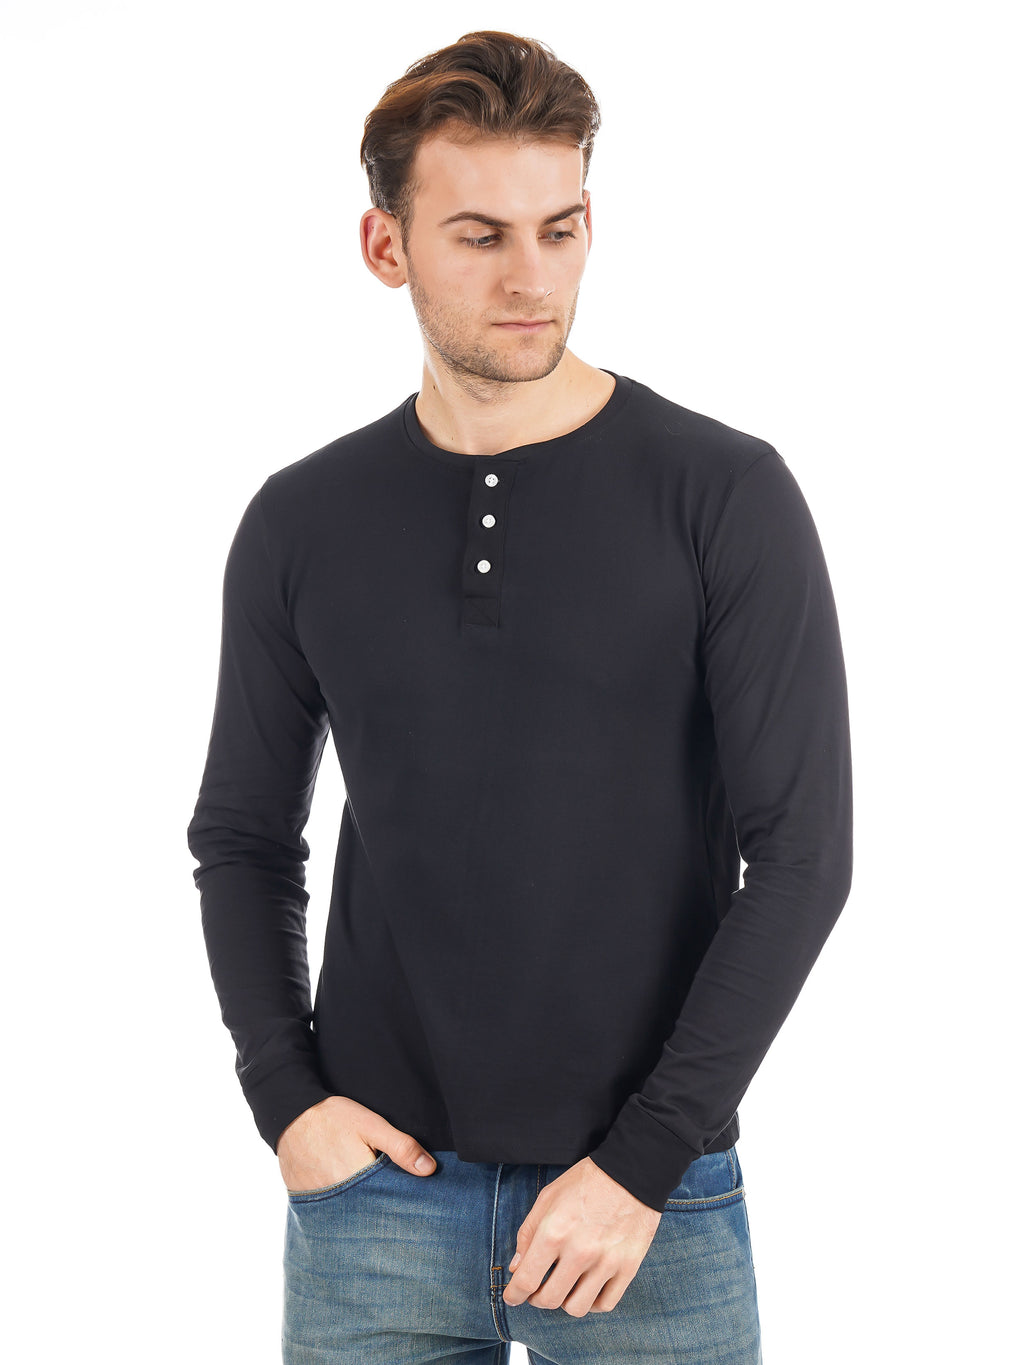 Rock Hooper Men's Full sleeve Henley Neck Cotton Black T-Shirt